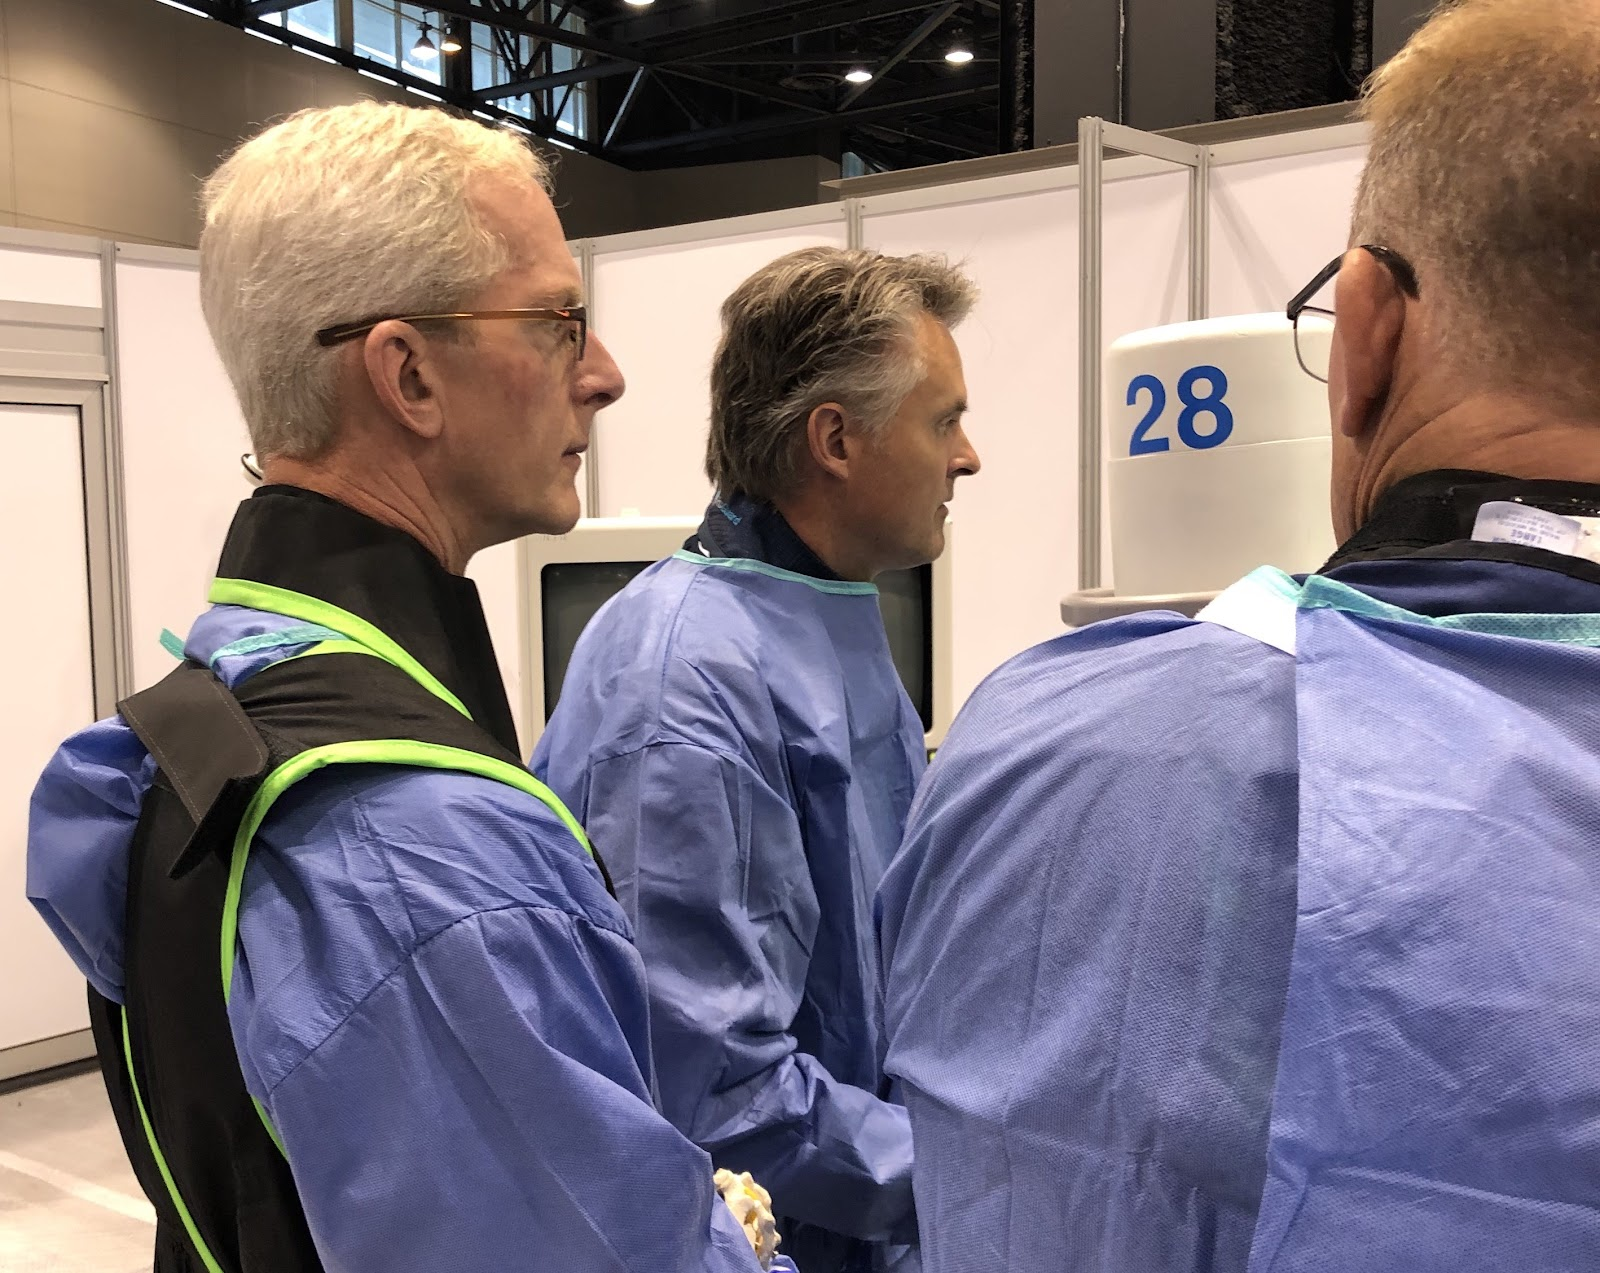 Dr. Hanson and other spine surgeons study a surgical technique at the NASS conference.